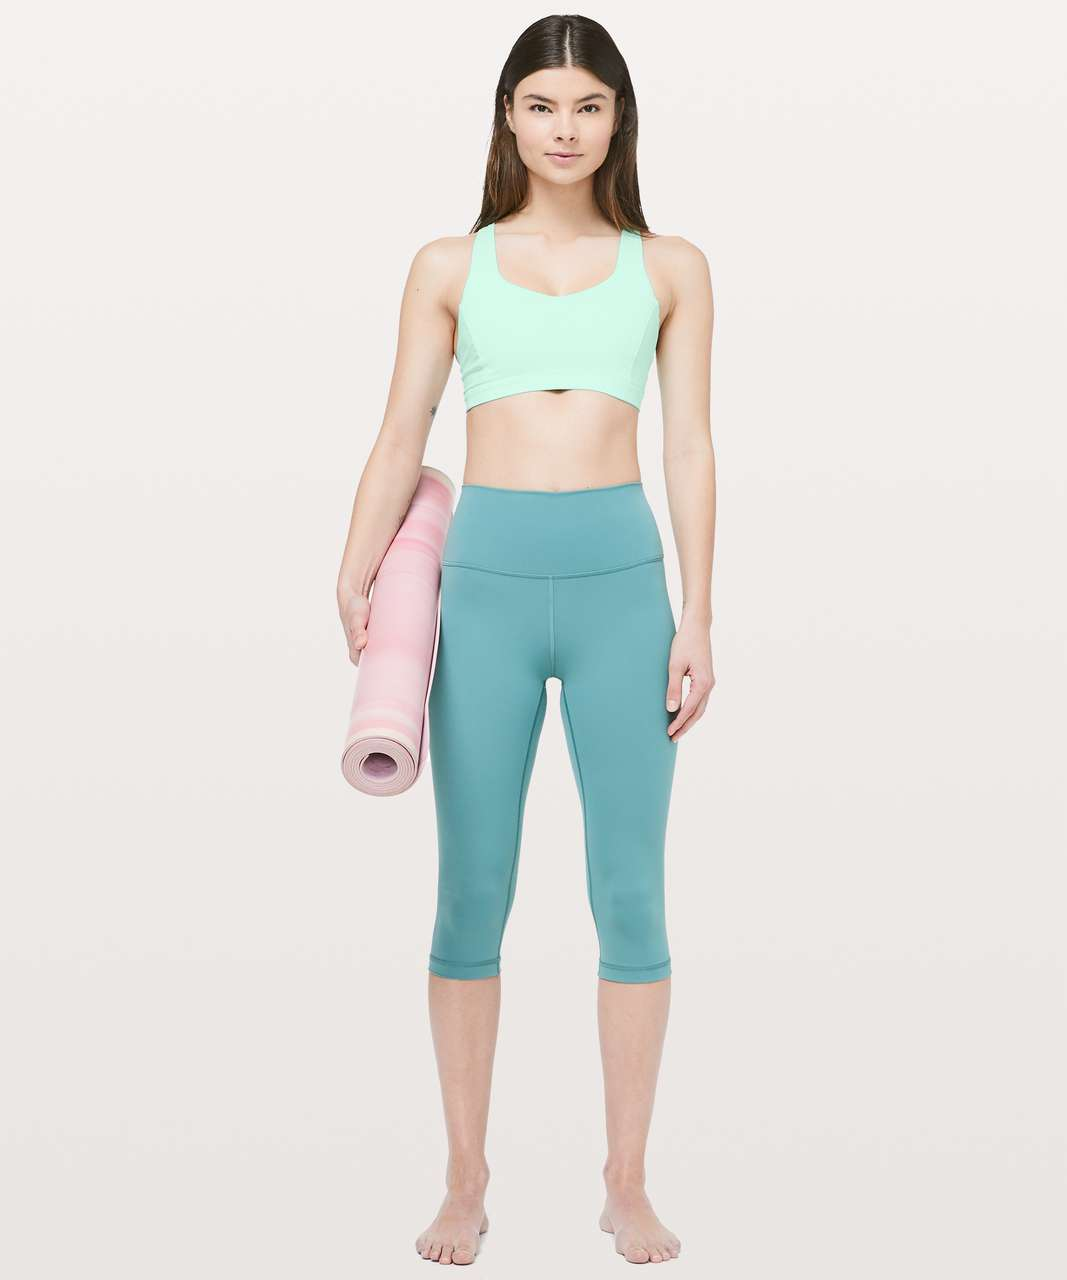 Lululemon Free To Be Serene Bra - Toothpaste